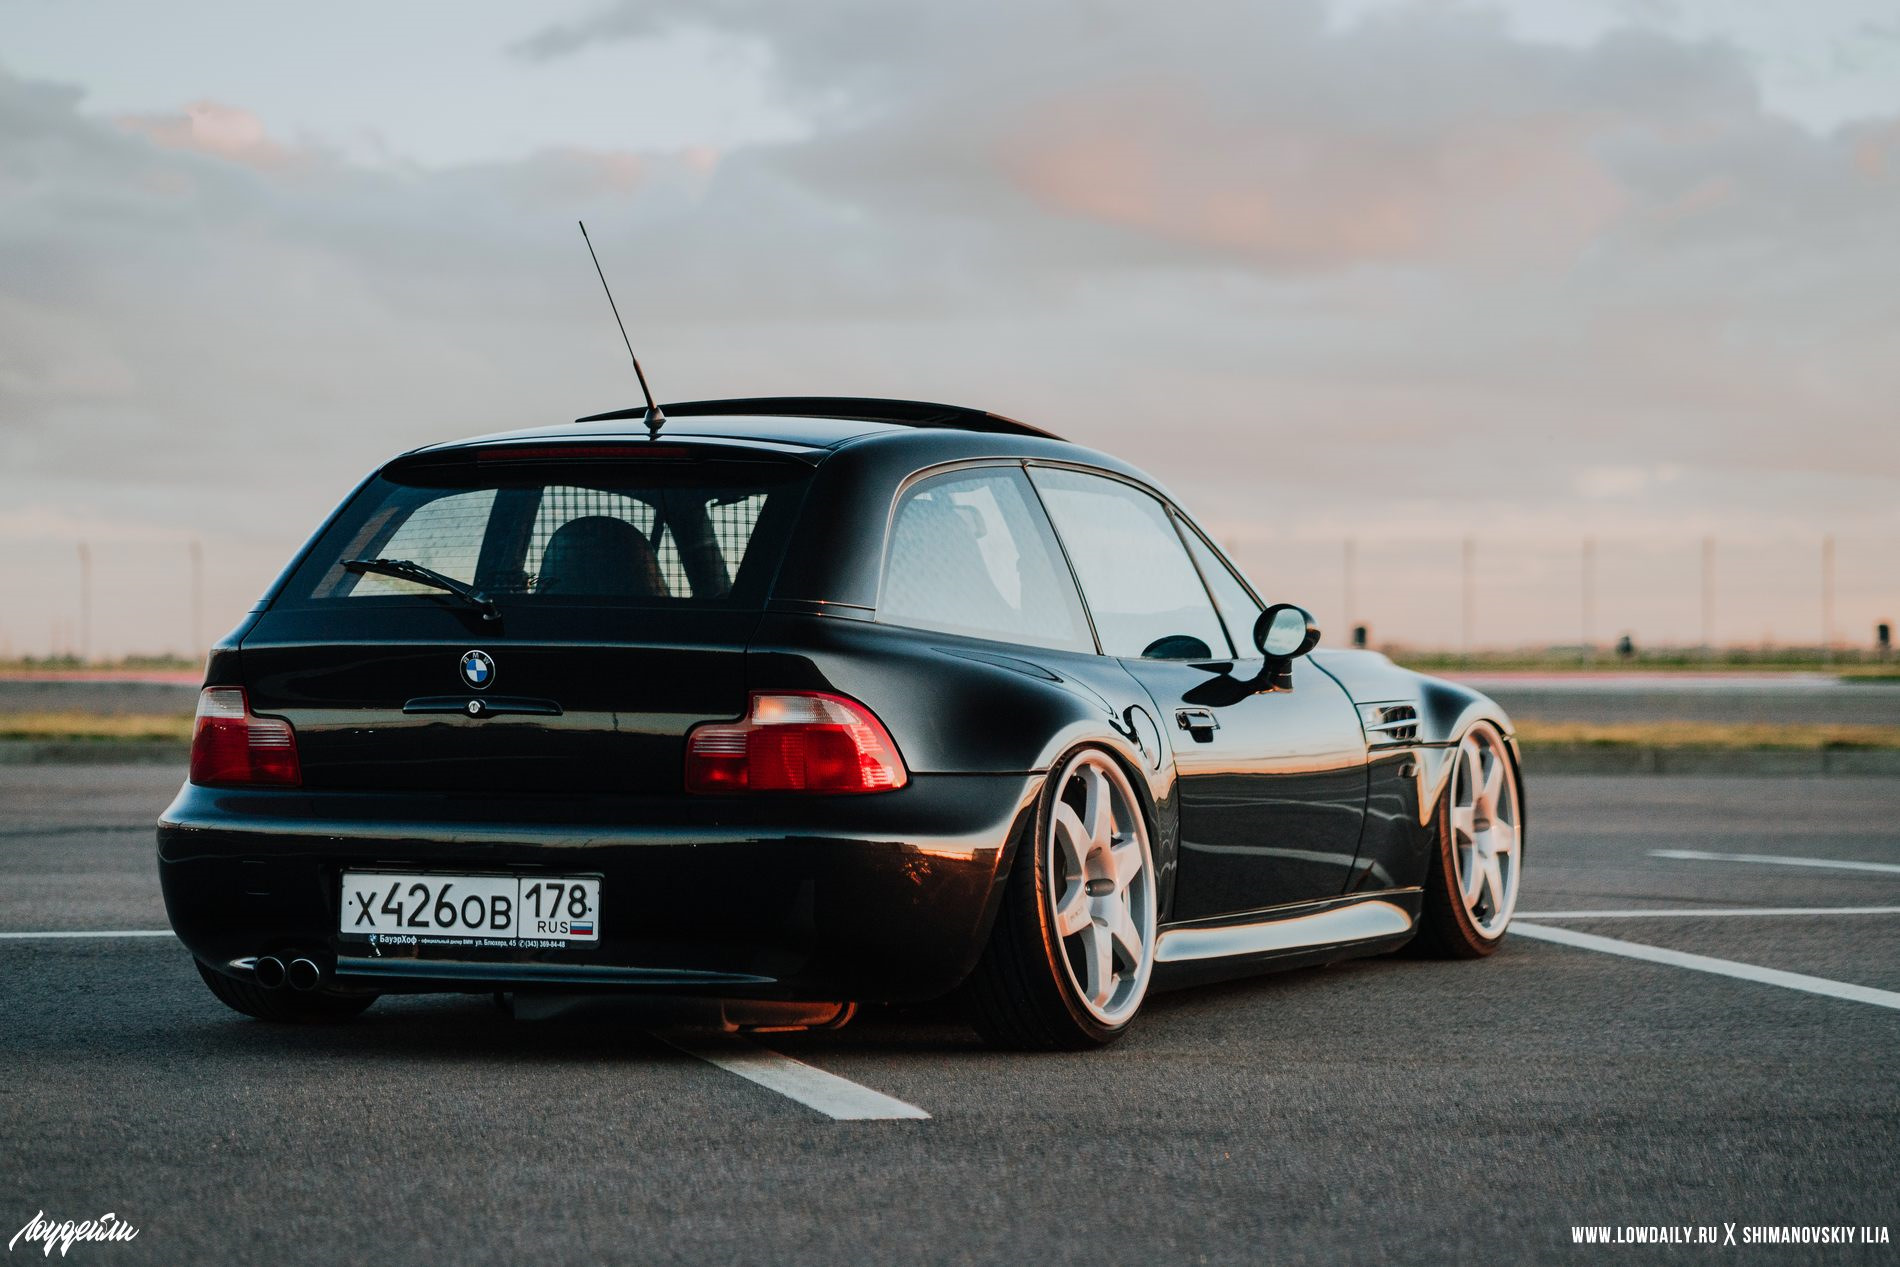 Bmw Z3 Coupe на Lowdaily сообщество Stanced на Drive2